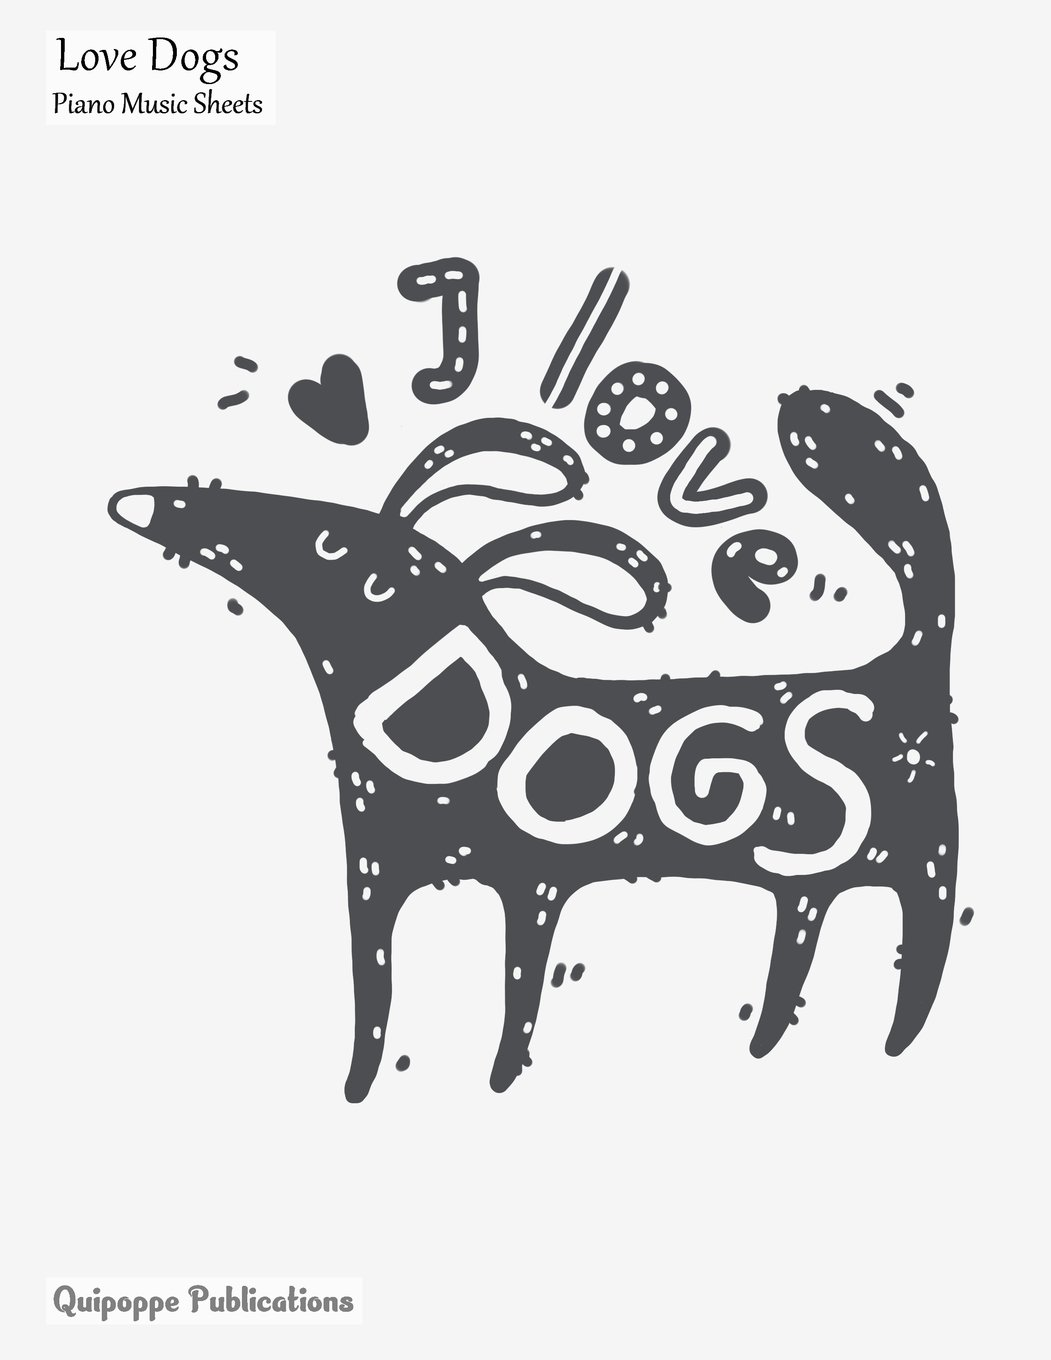 Download Love Dogs Piano Music Sheets: Large Music Notation and Songwriting Notebook For Piano Players With Love Dogs I Love Dogs Lettering Cover pdf